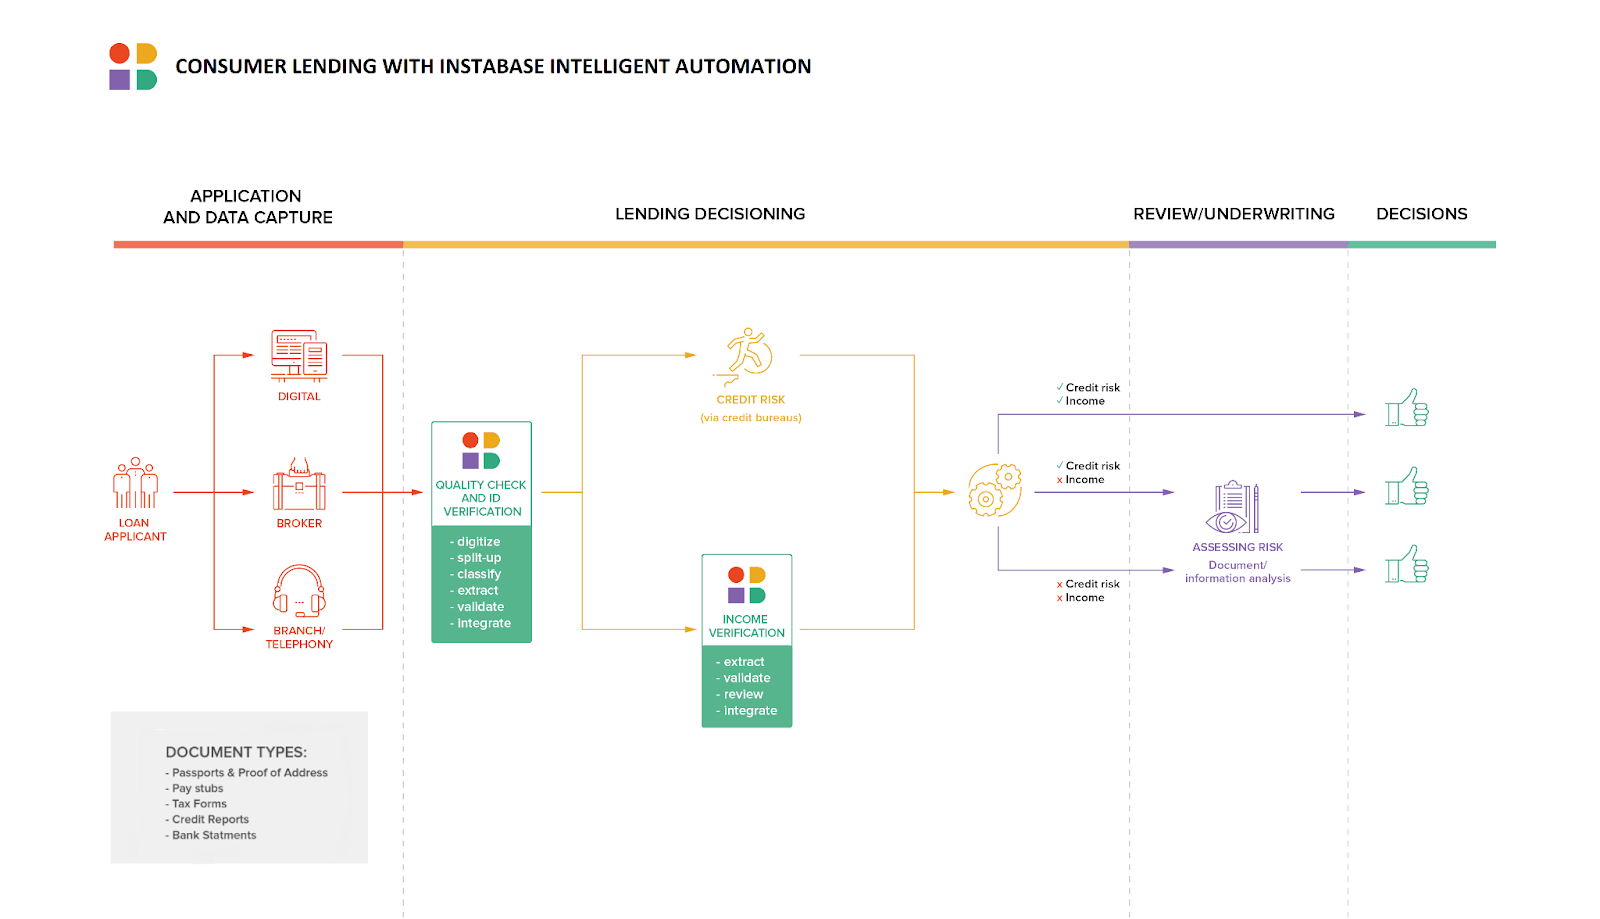 Instabase consumer lending with intelligent automation